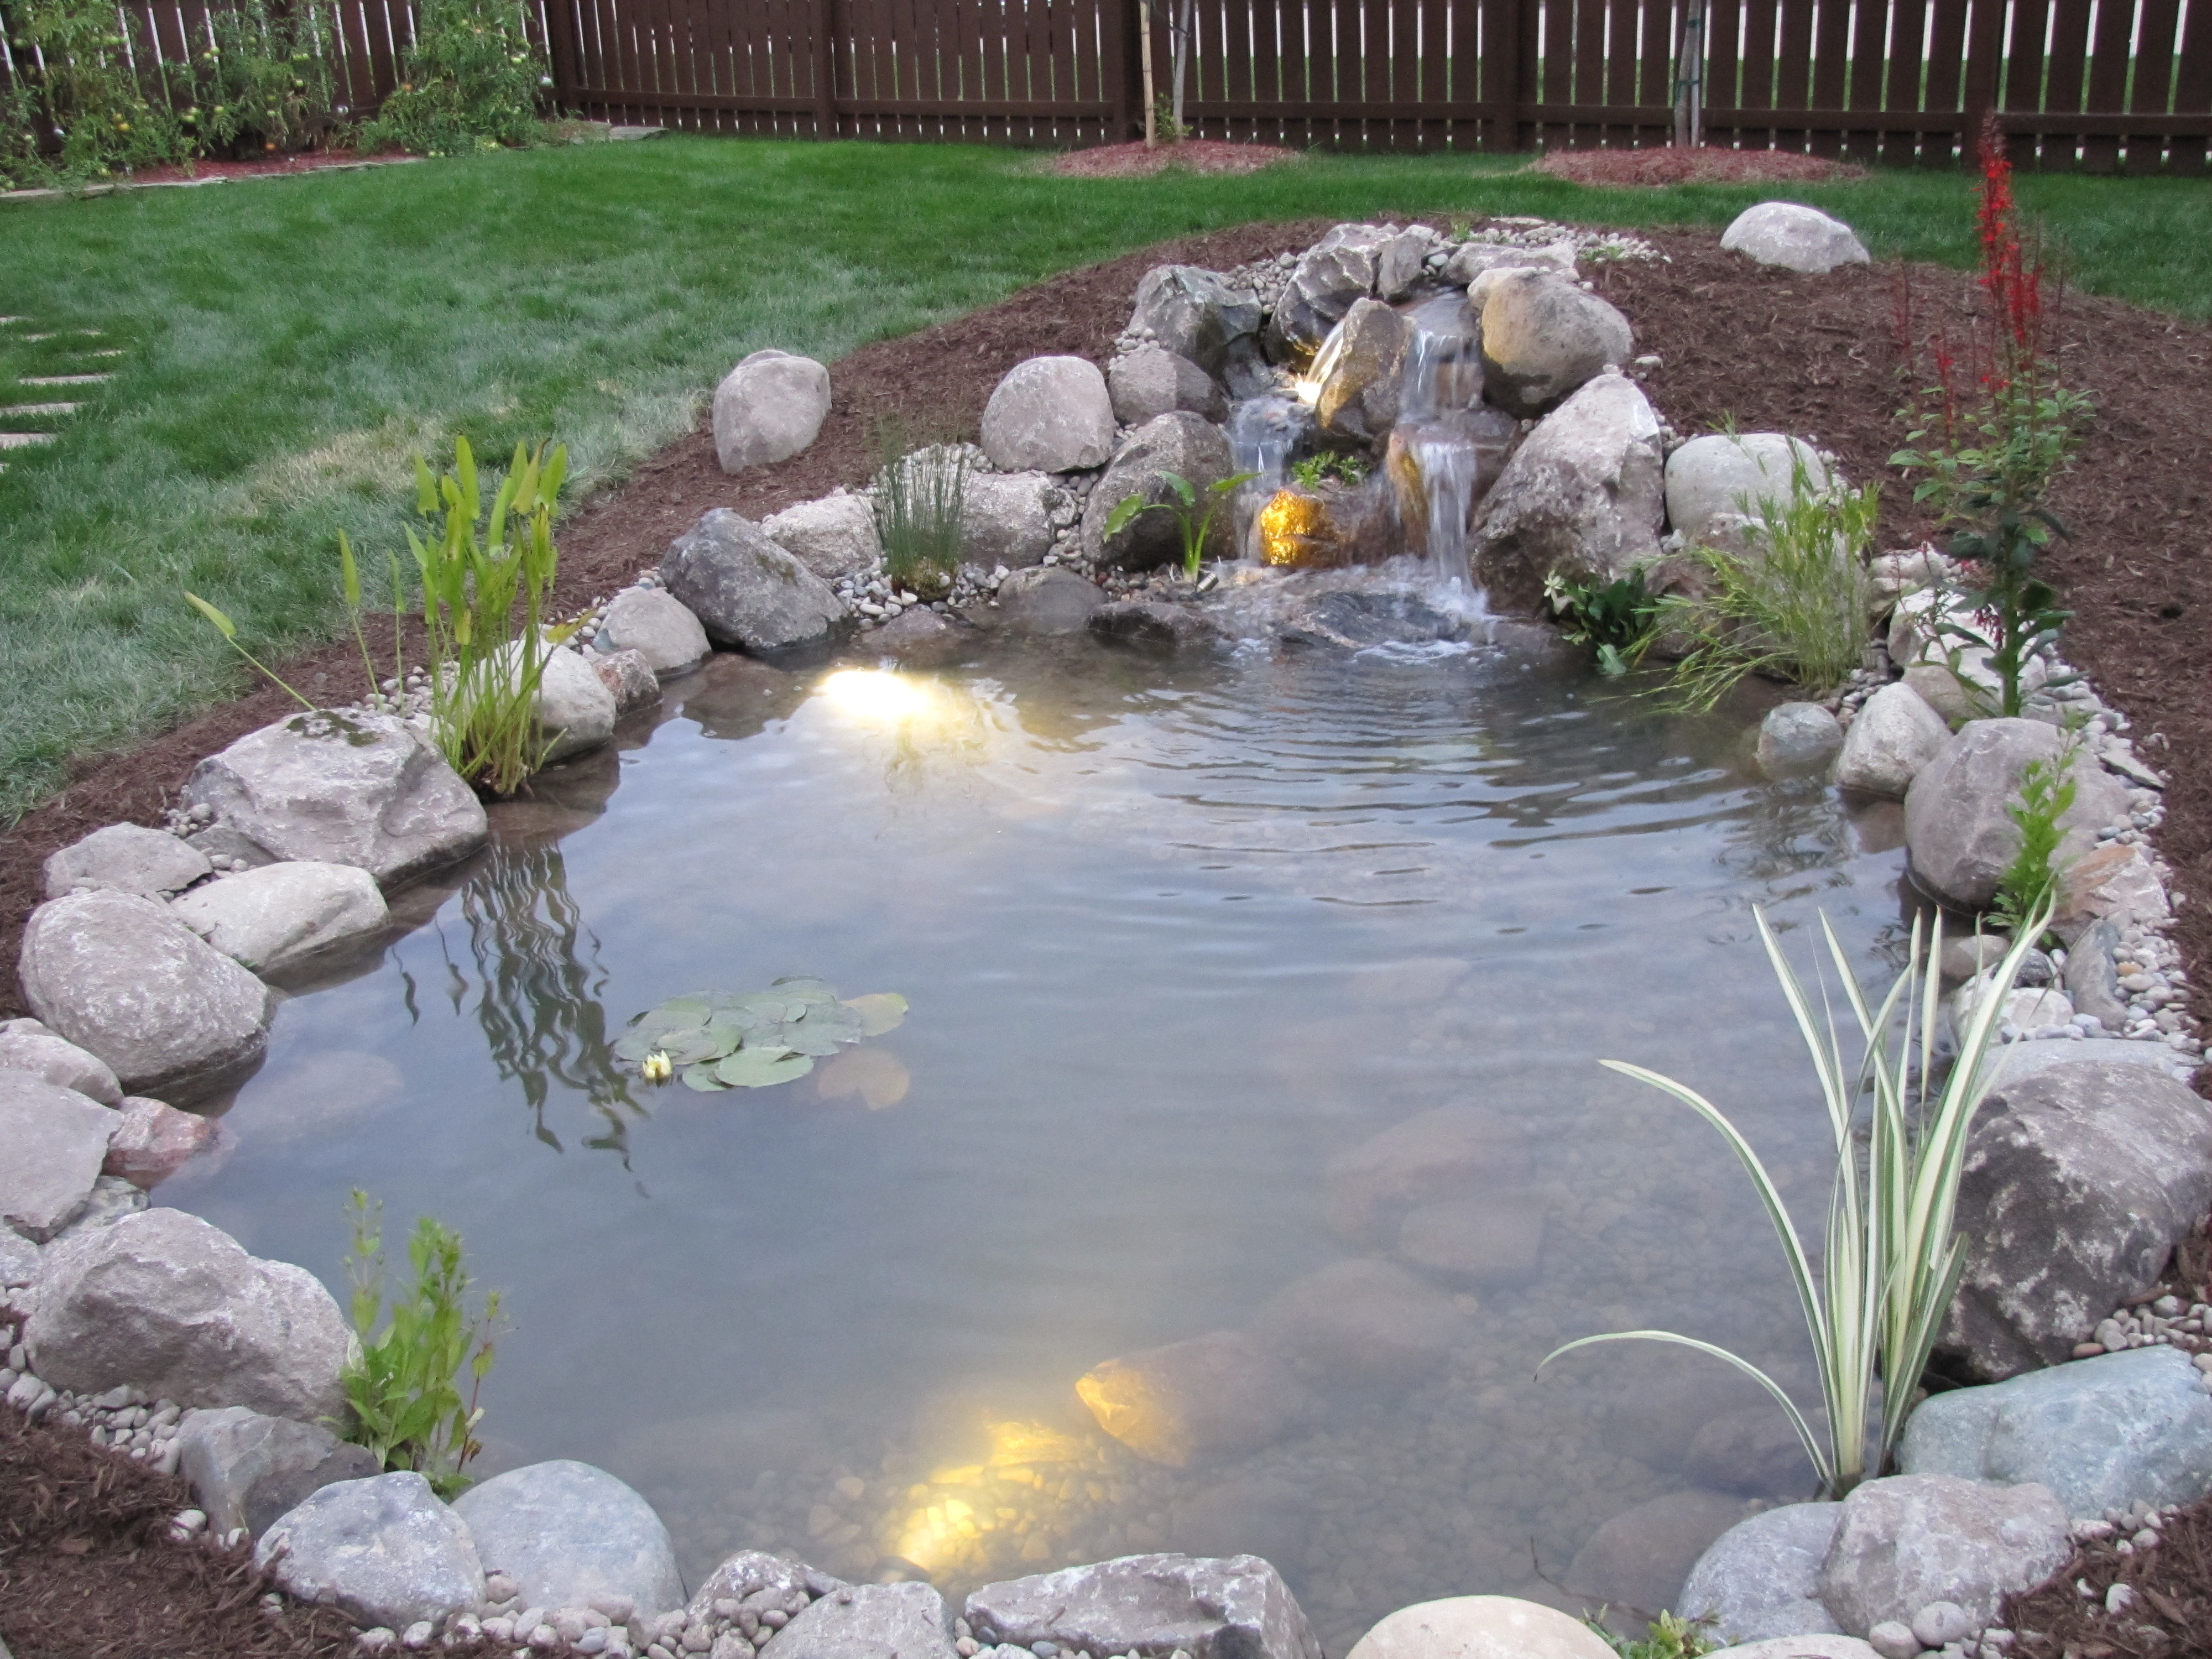 Pondering waters l l c video image gallery proview for Yard water ponds